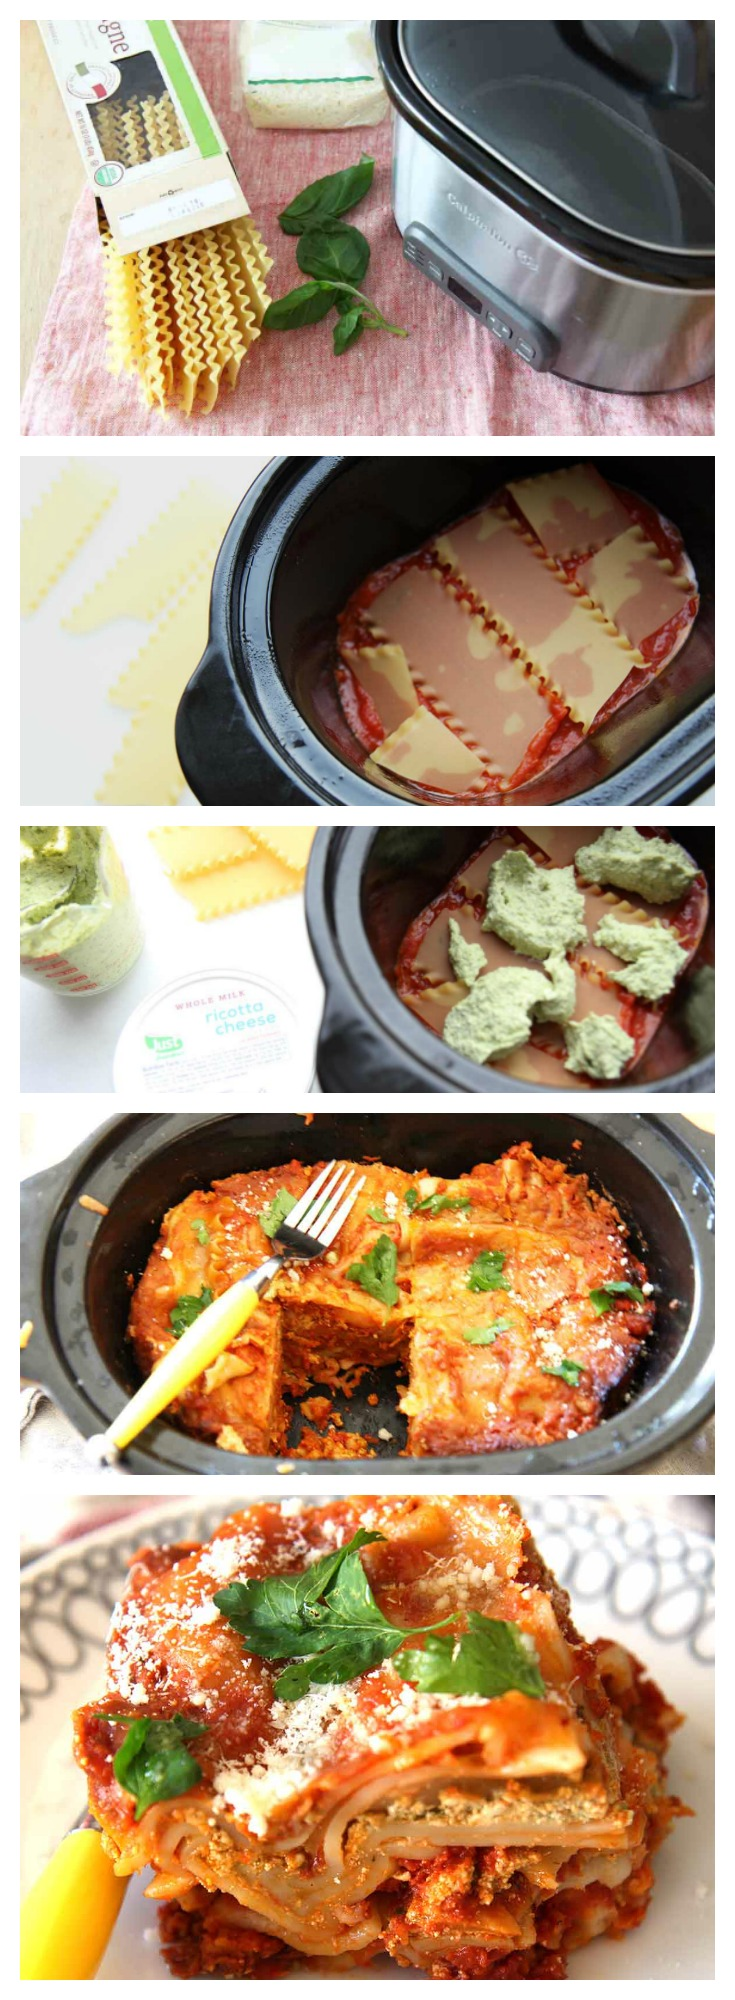 Slow Cooker Pesto Lasagna Recipe. Easy hot meal waiting for you when you get home.. The short cut is no need to boil the noodles and one pot. ChopHappy.com